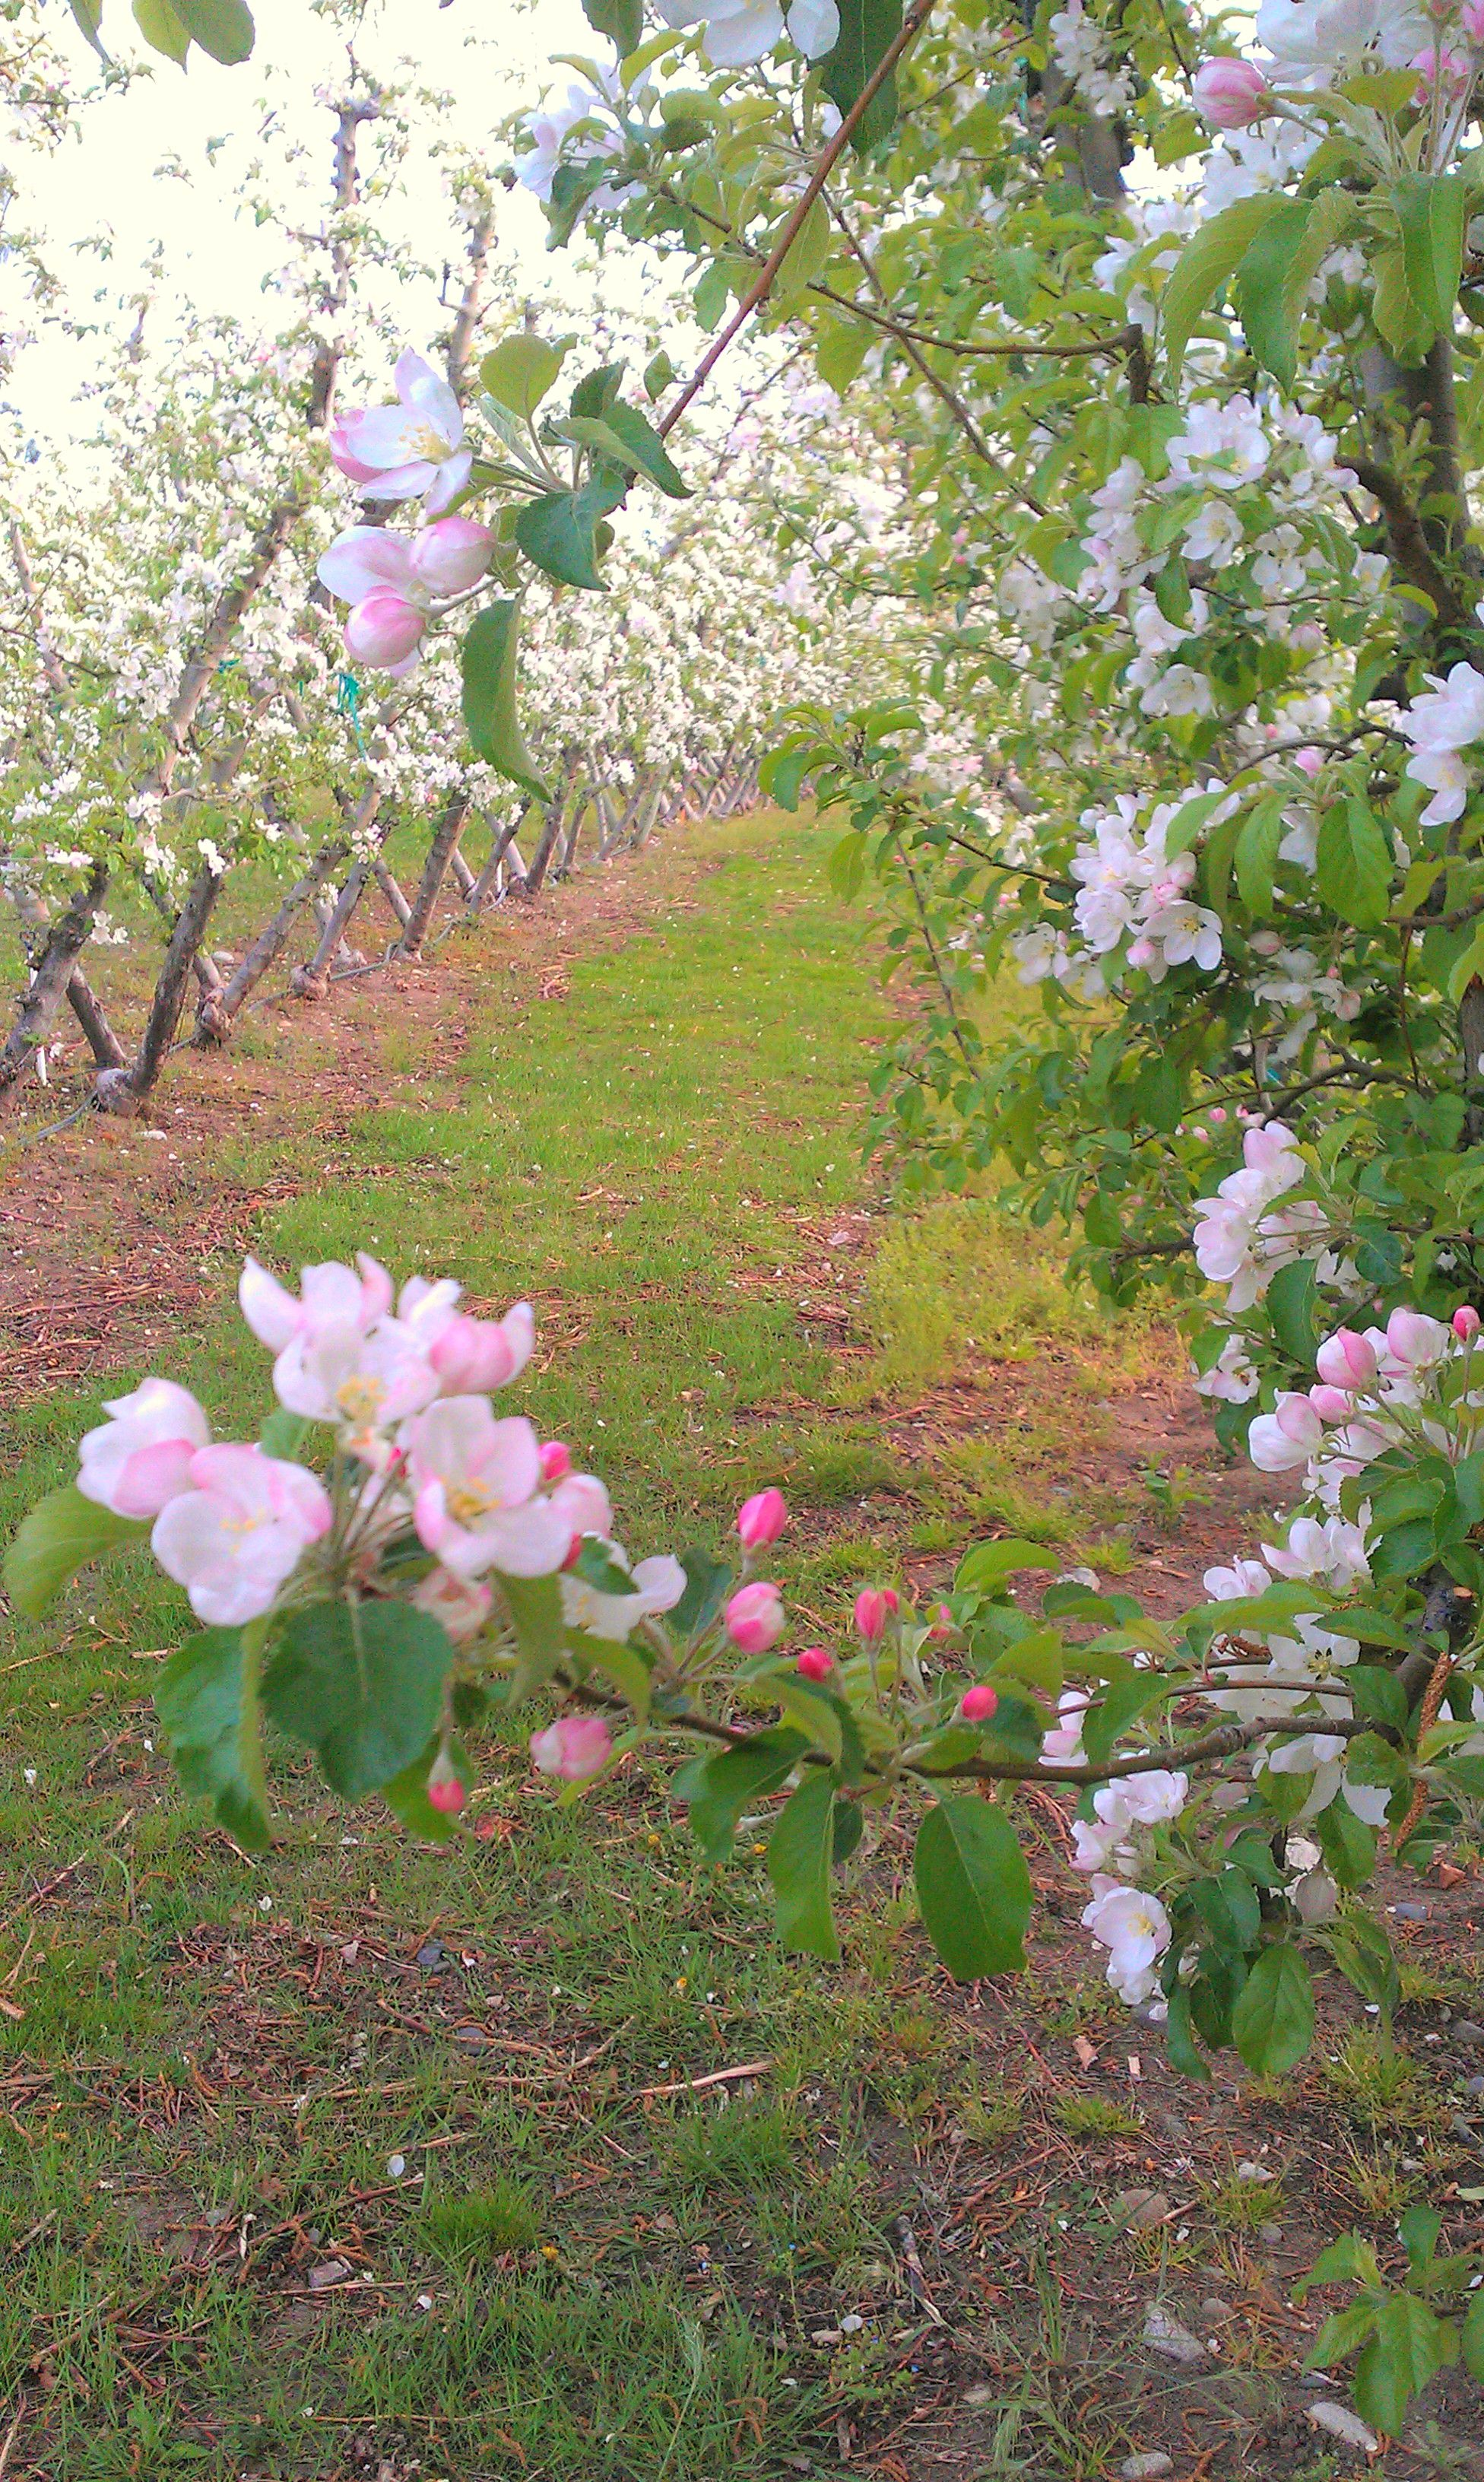 The Apple Blossoms In The Orchard.D Mother Nature At Her Best. Find This  Pin And More On Gardens Are Us ...